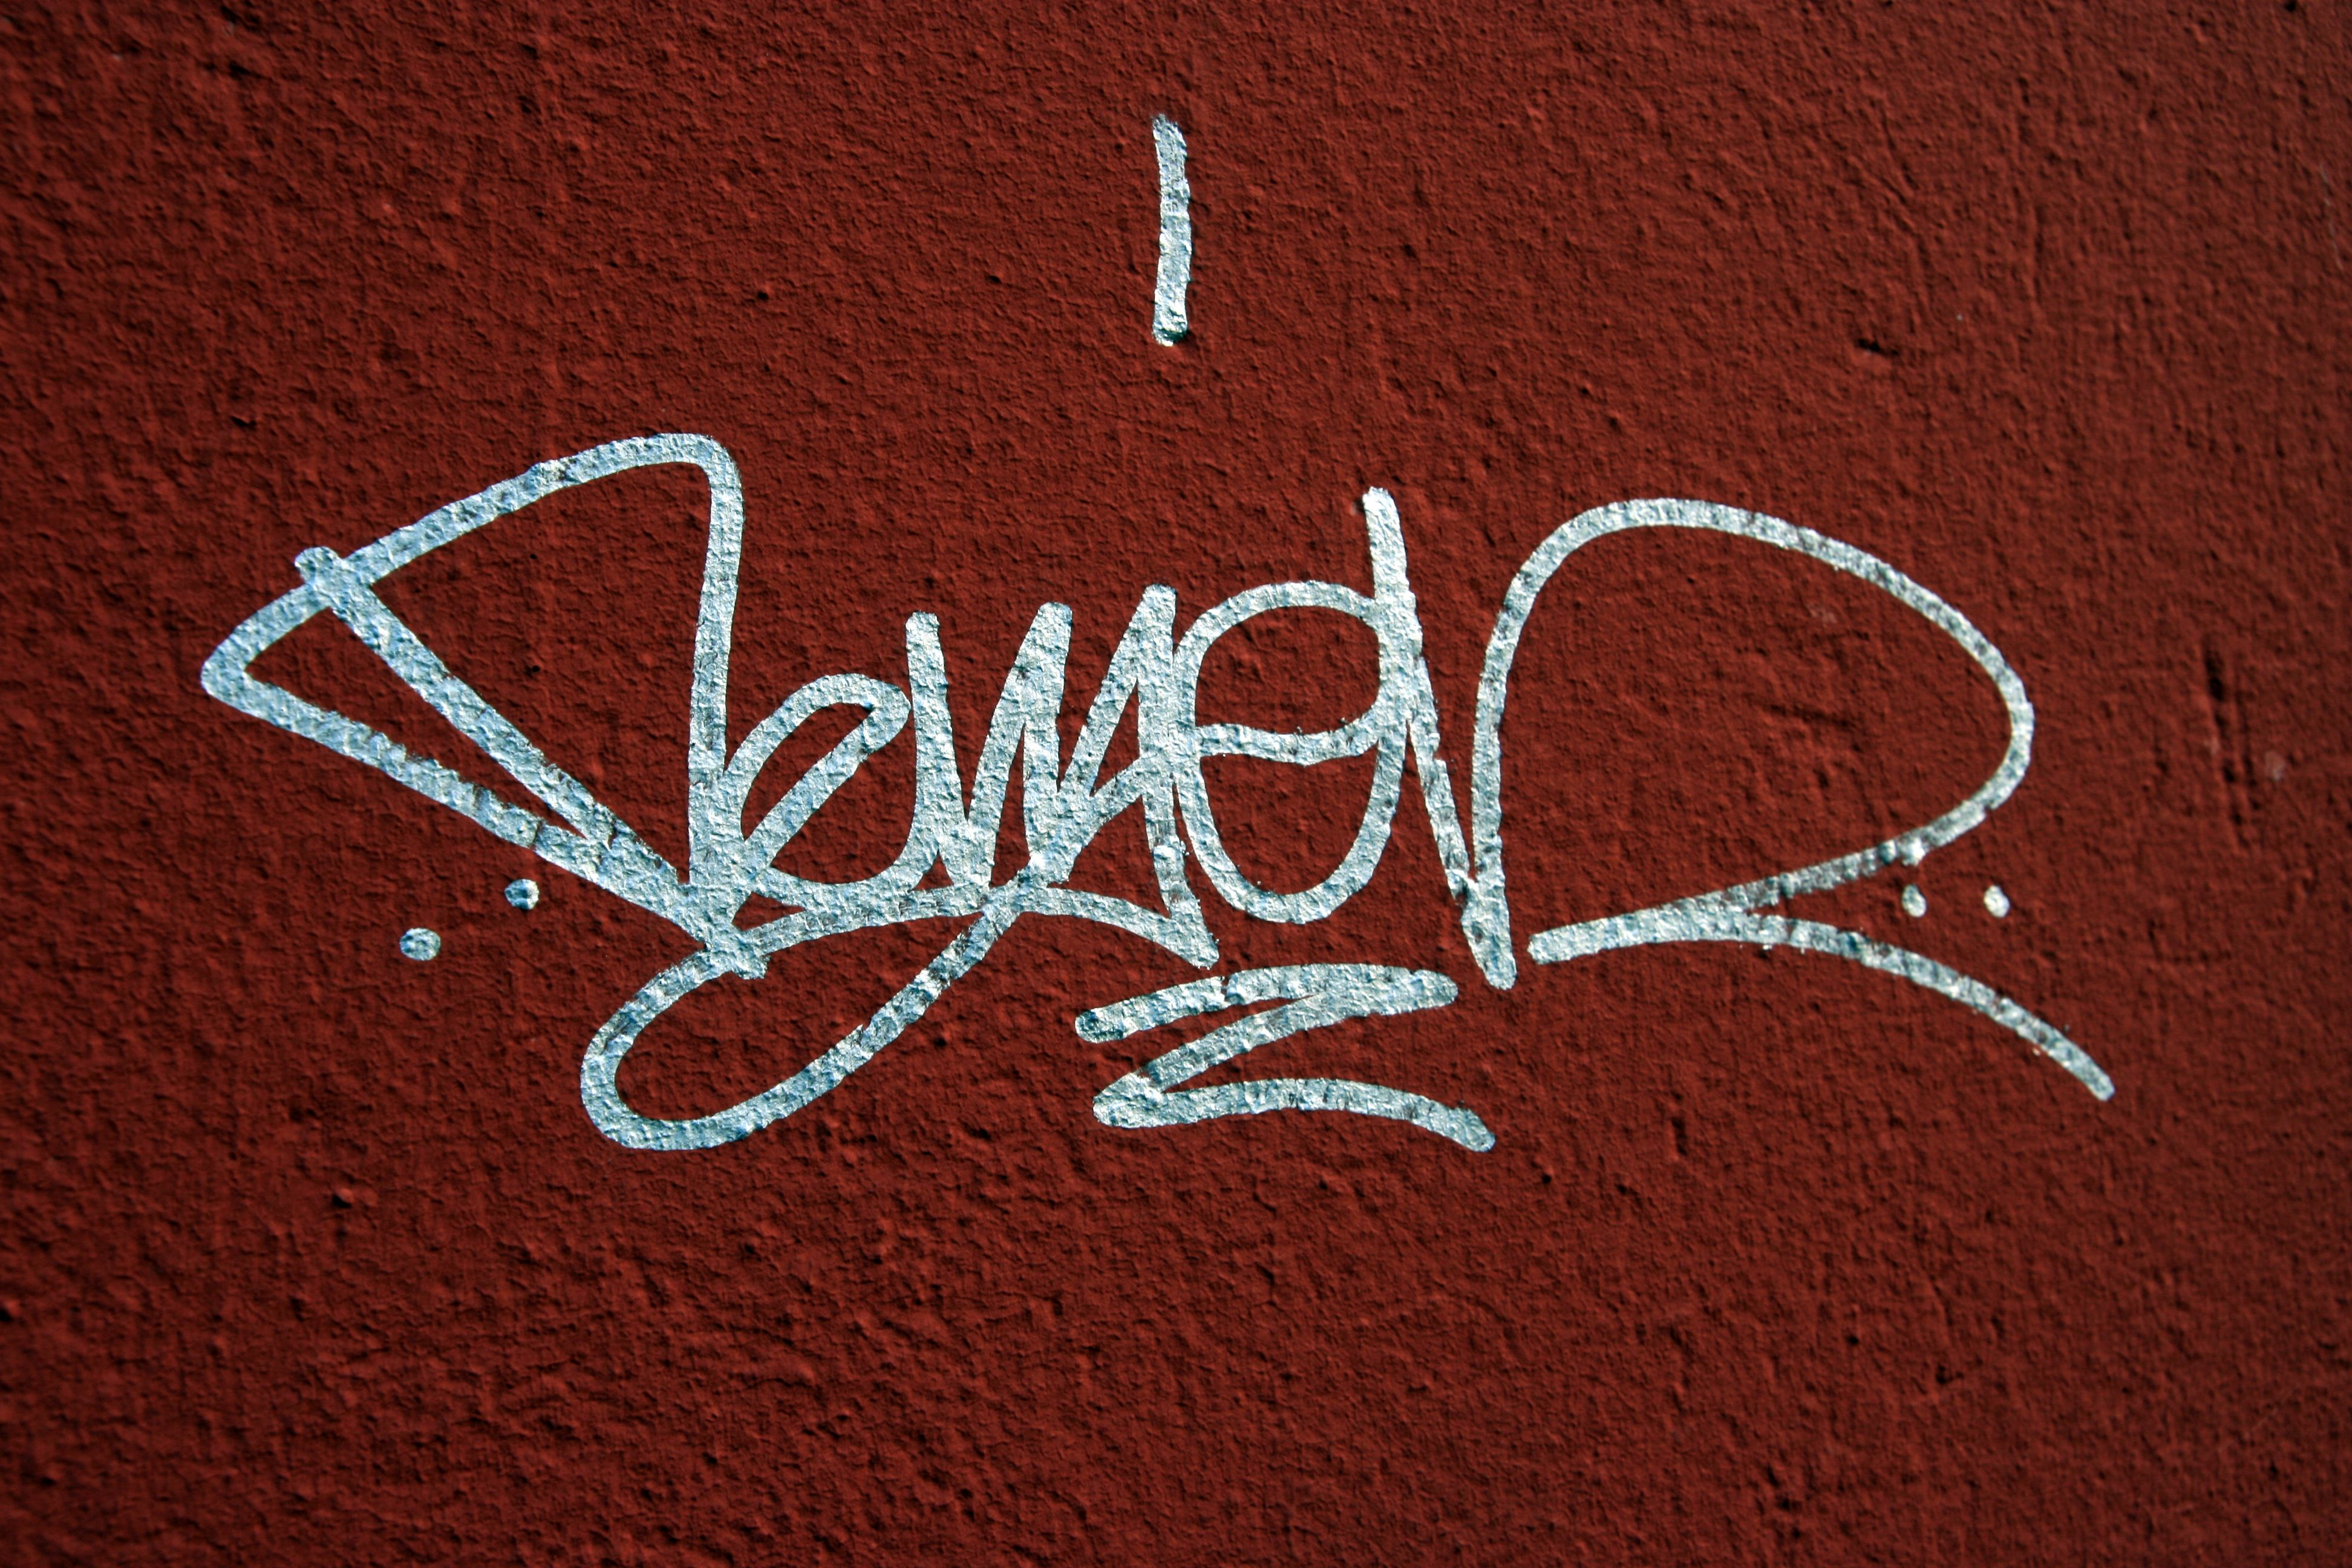 1000+ images about Graffiti Tags on Pinterest